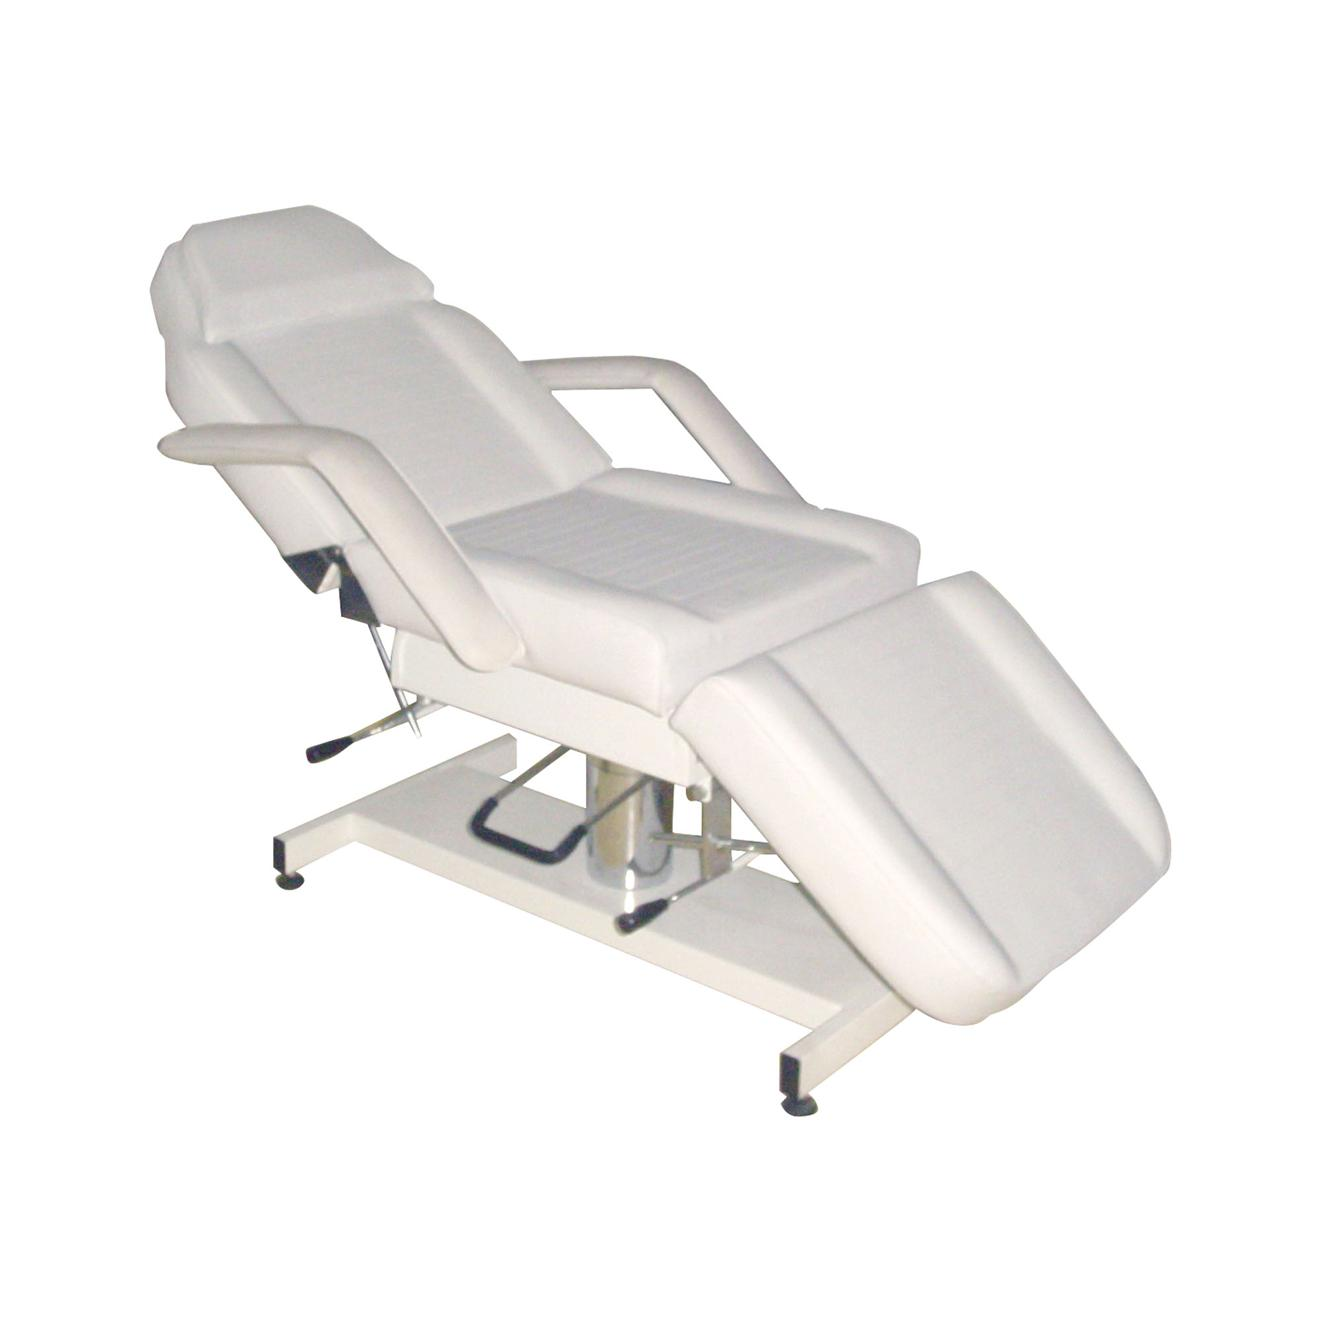 Massage tables edmonton massage tables one year guarantee alongside 2 year massage imperial - Massage chairs edmonton ...